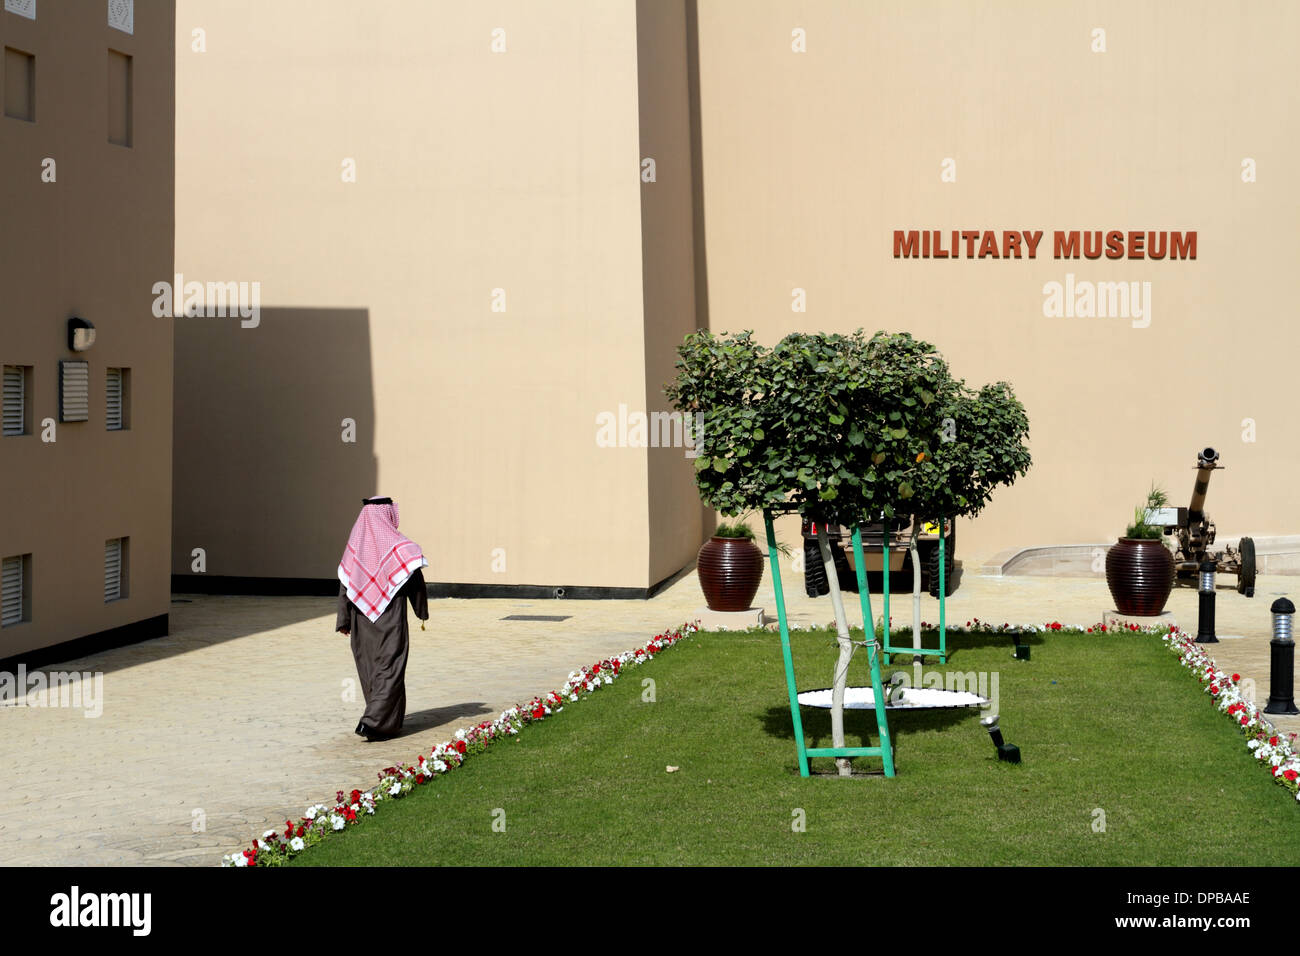 Exterior view of the Military Museum, Riffaa, Kingdom of Bahrain - Stock Image